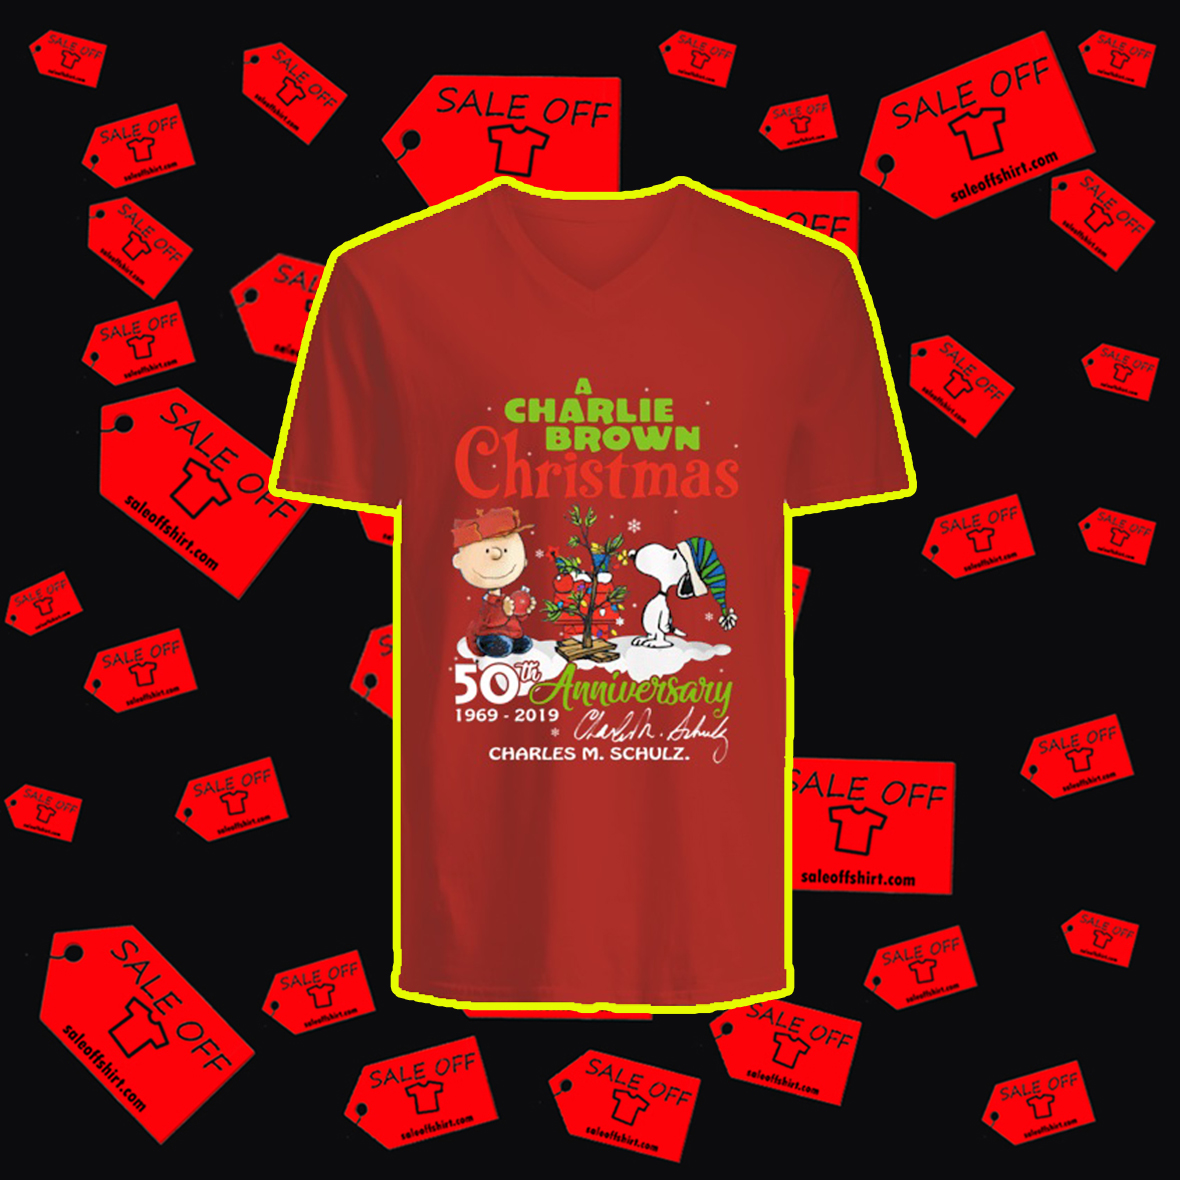 A Charlie Brown Christmas 50th Anniversary 1969 2019 Charles M. Schulz Signature v-neck